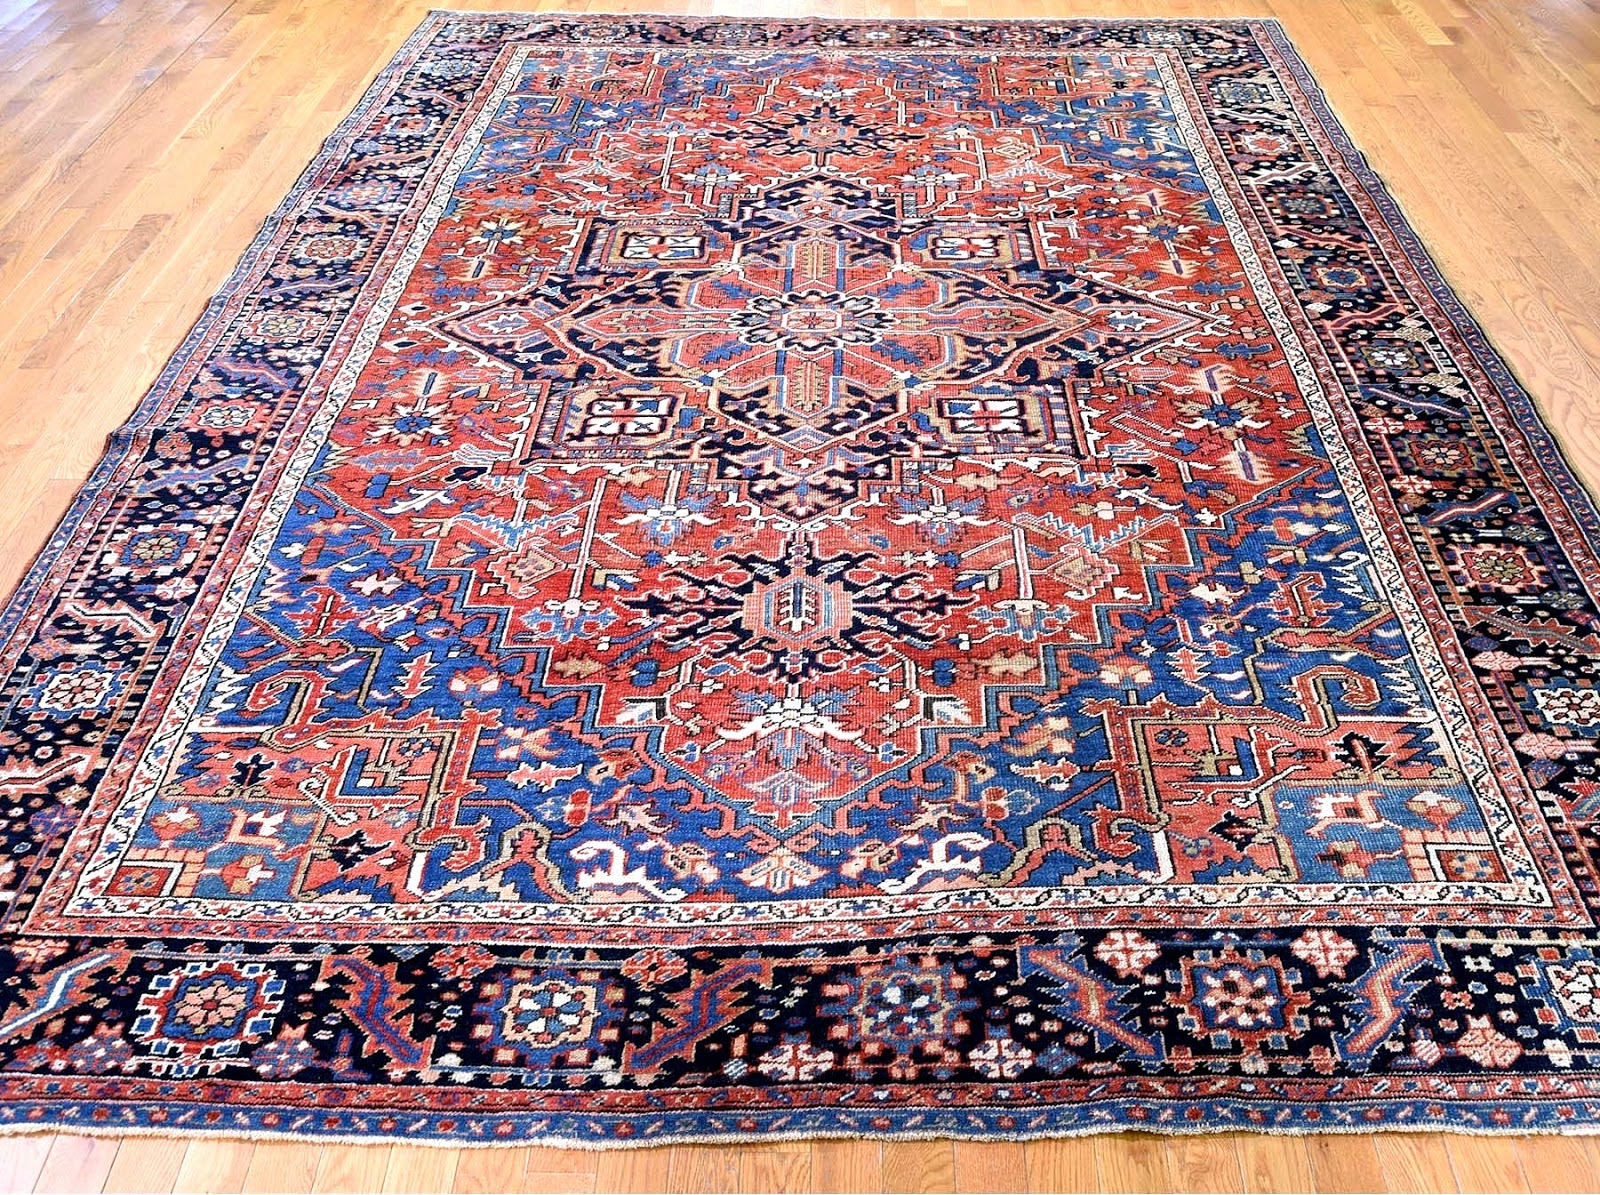 What's Unique about Antique Persian Rugs?